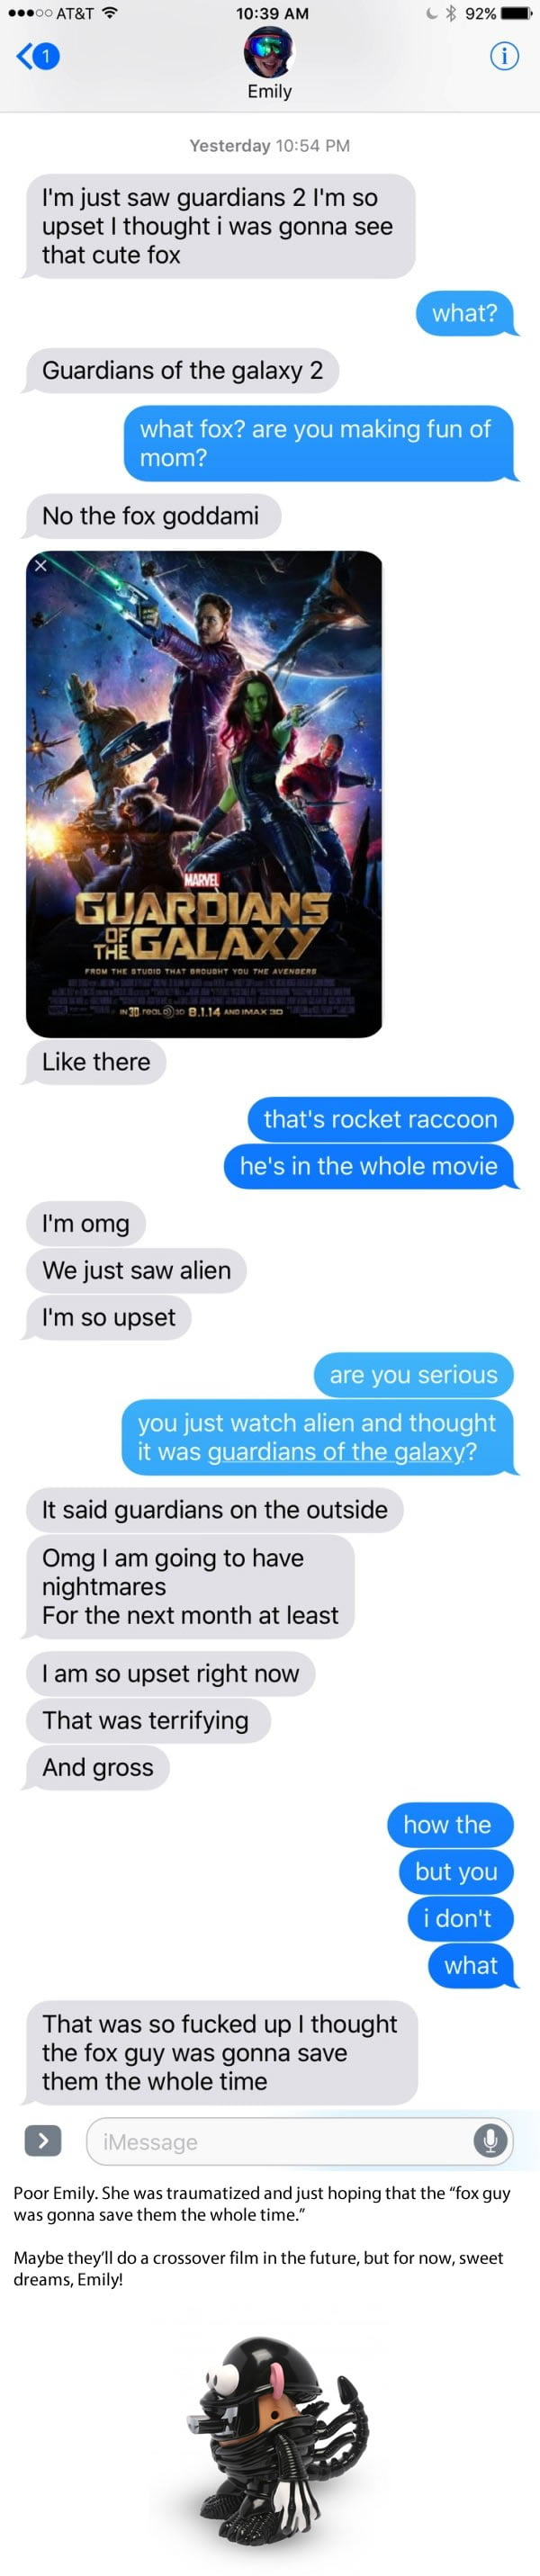 Girl Has the Worst 'Guardians of the Galaxy Vol. 2' Experience You Can Imagine